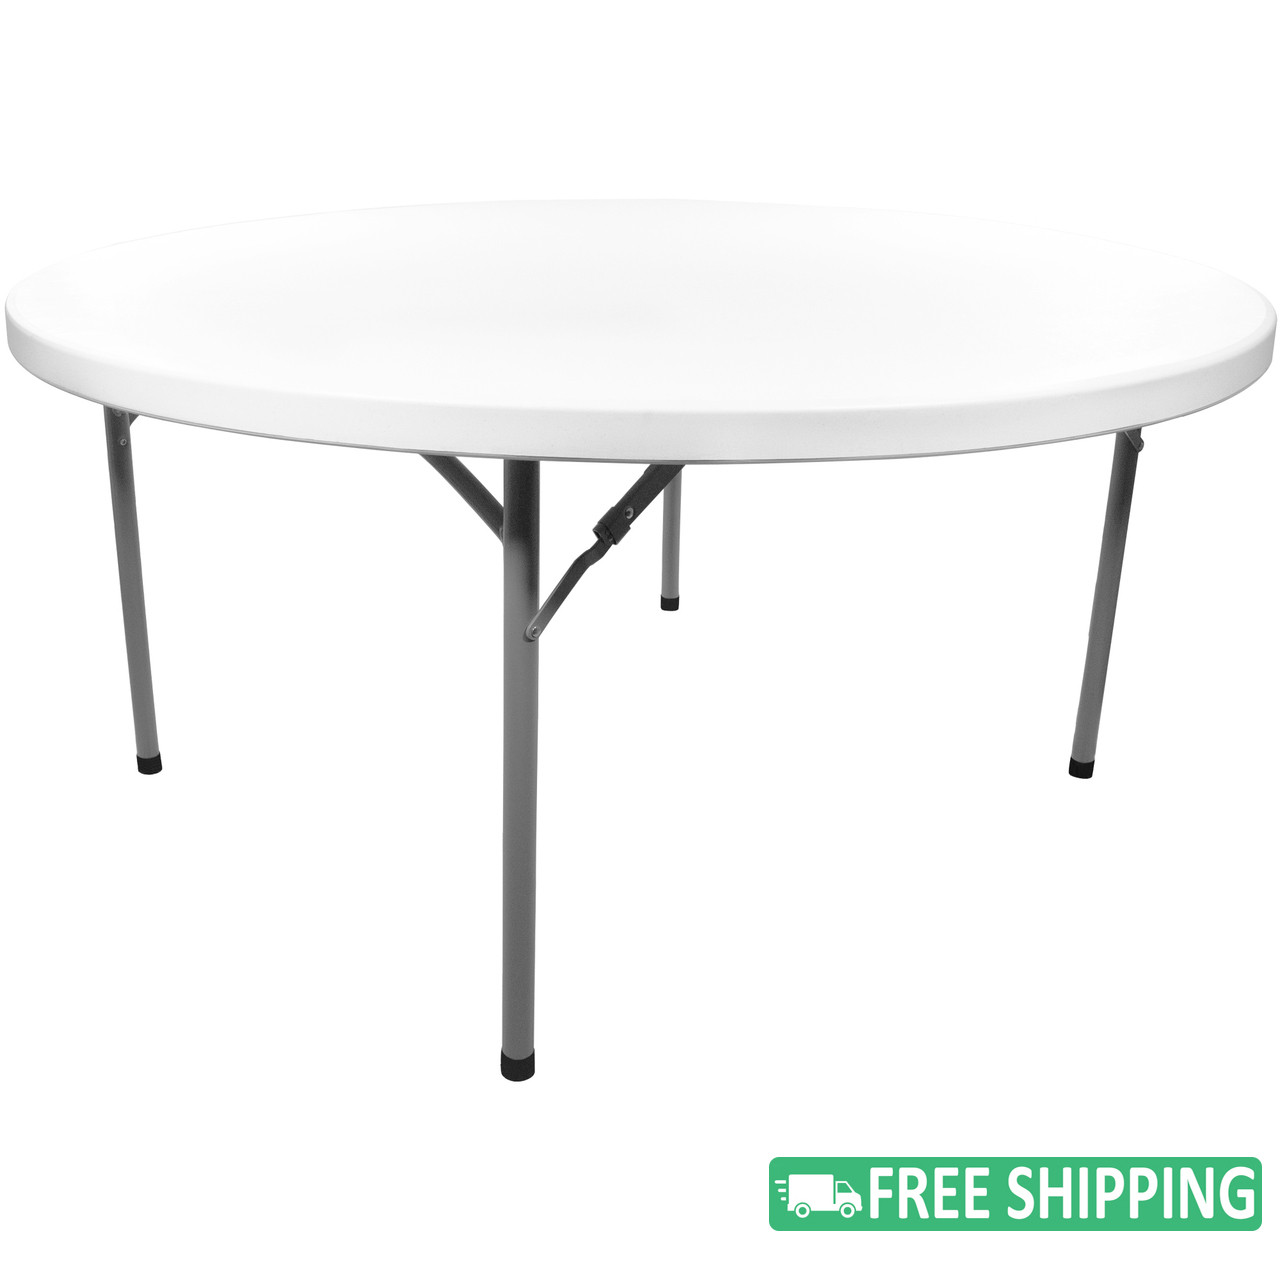 Round Plastic Tables 10 Pack Advantage 6 Ft Round White Plastic Folding Table Adv72r White 10 Seats 10 Adults